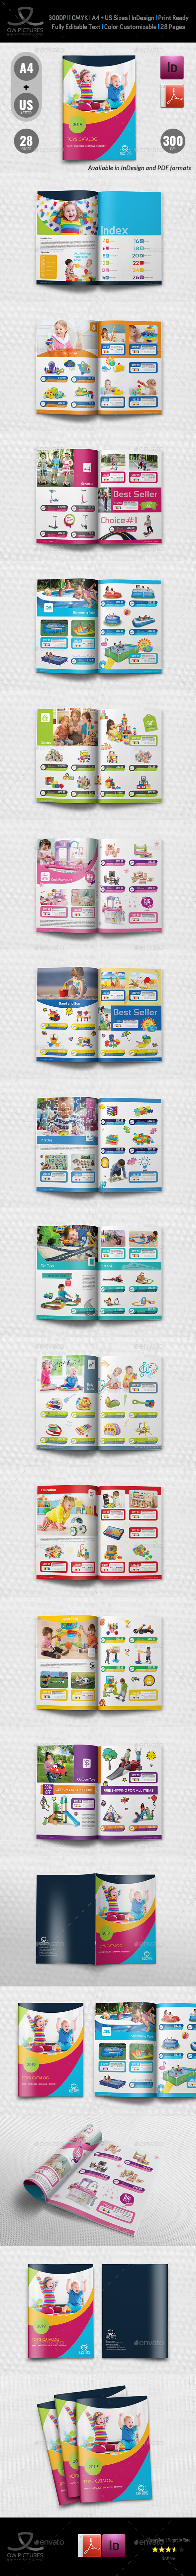 Toys Products Catalog Brochure Template - 28 Pages - Catalogs Brochures